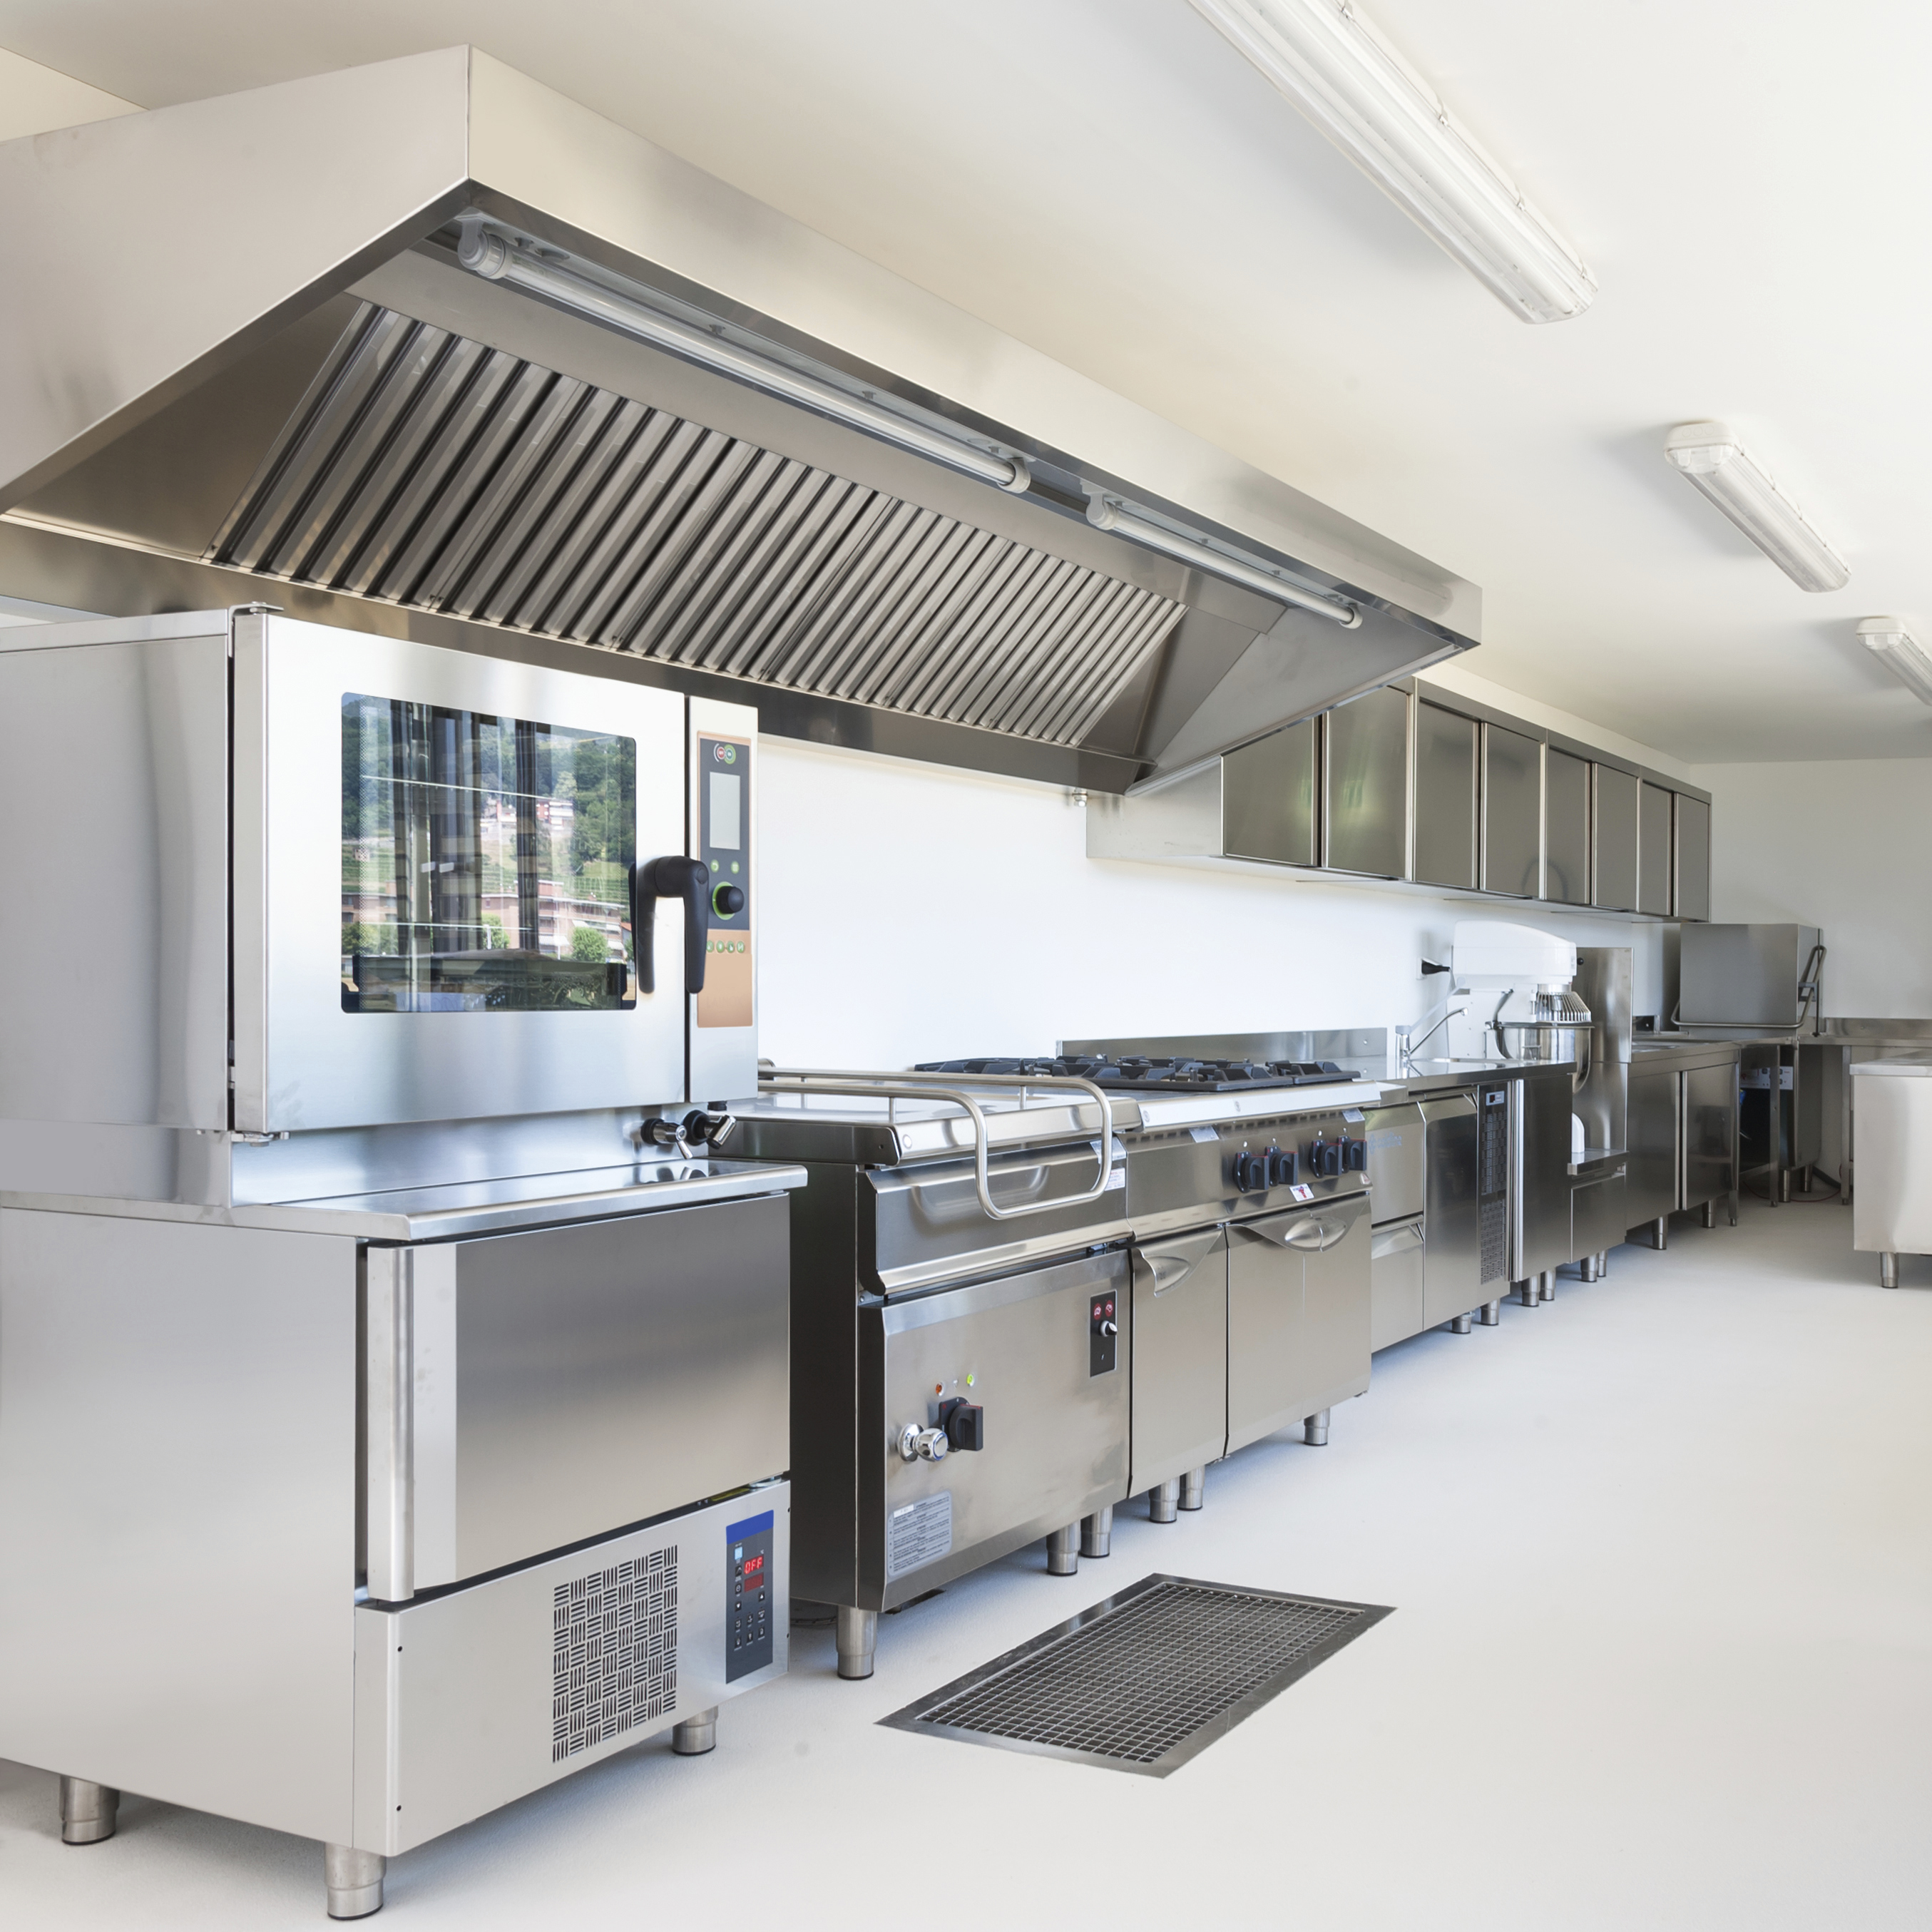 Commercial Kitchen Exhaust System Cleaning | SANAIR Indoor Air ...